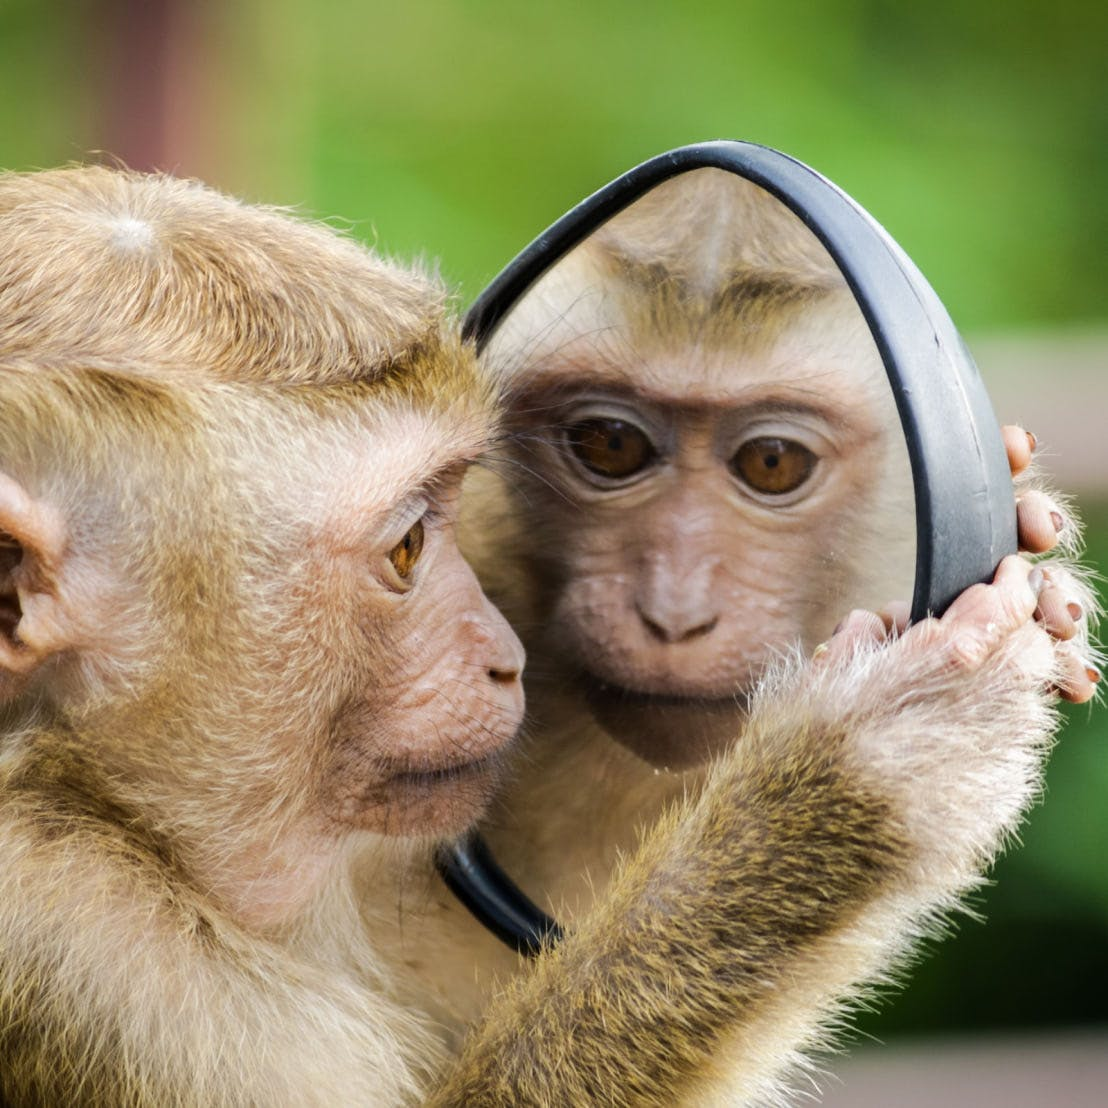 A monkey looks at their reflection in a mirror.